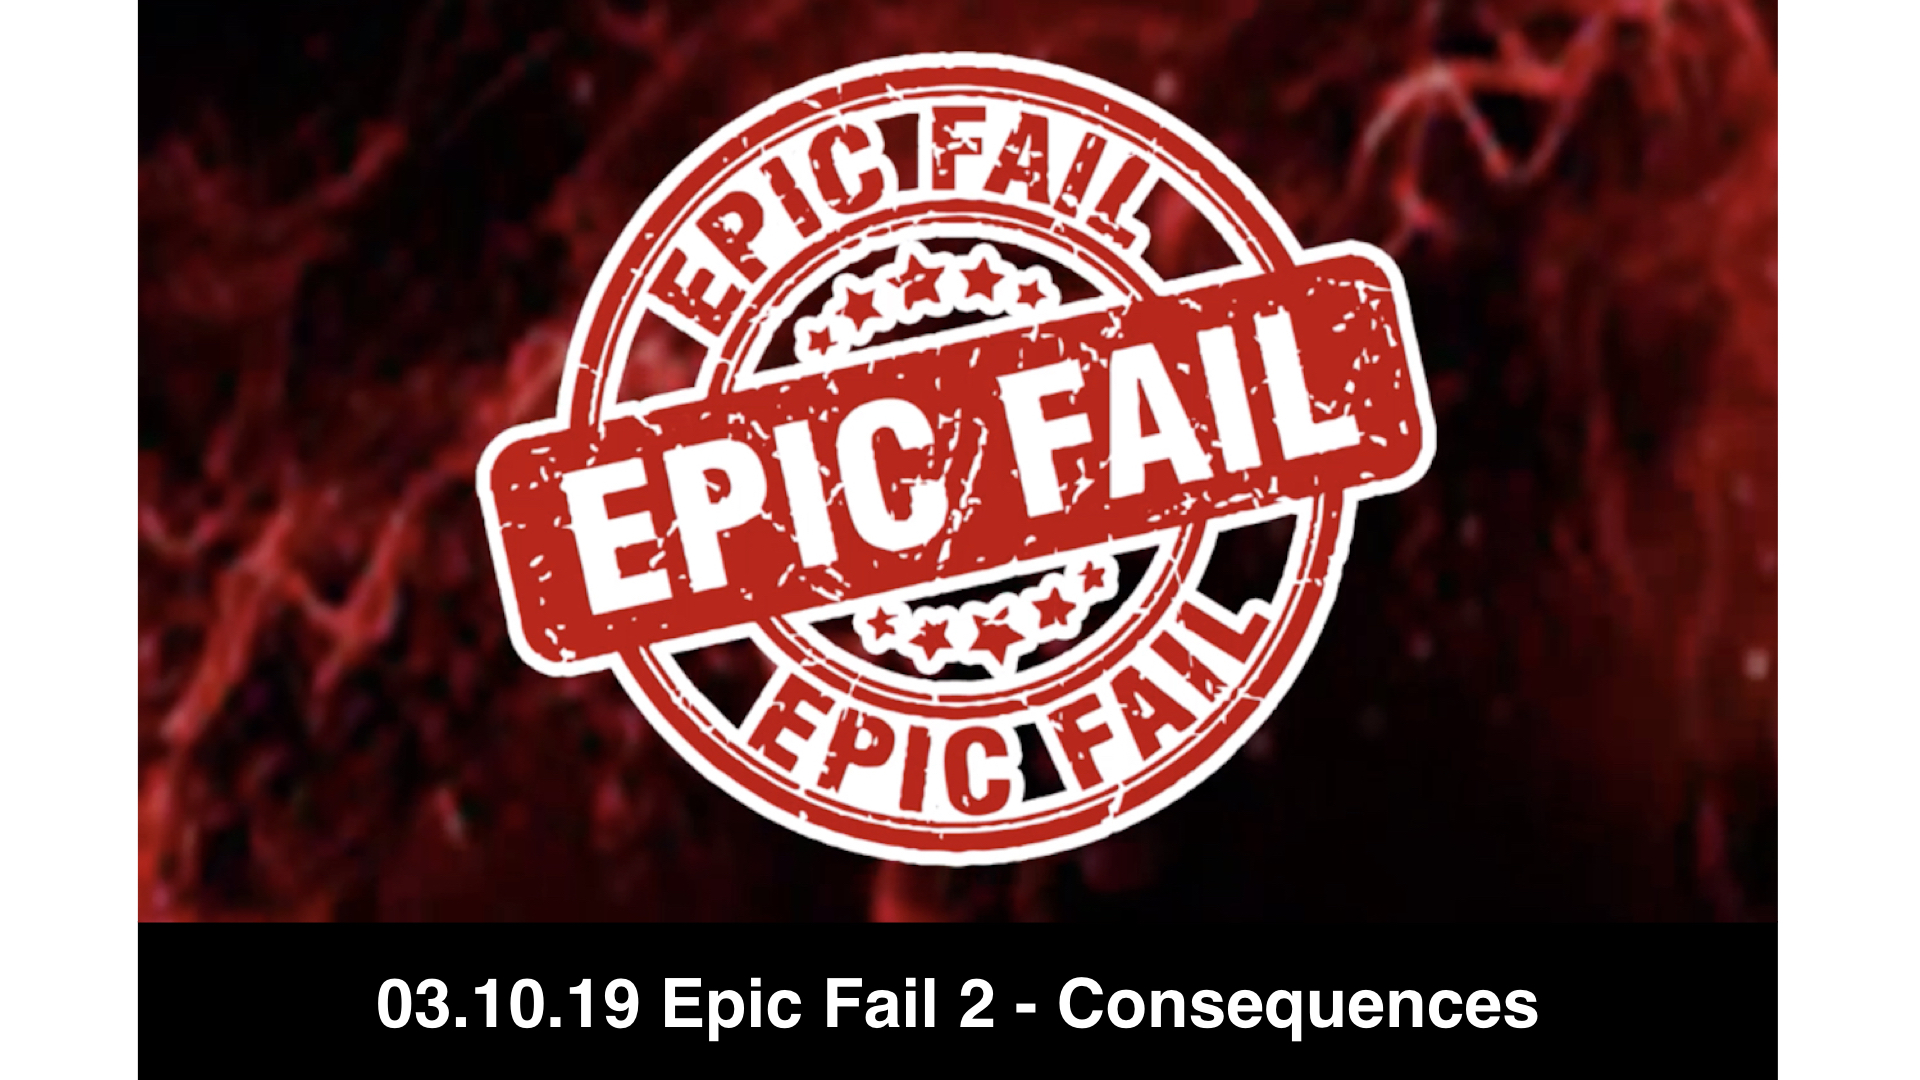 03.10.19 Epic Fail 2 - Consequences